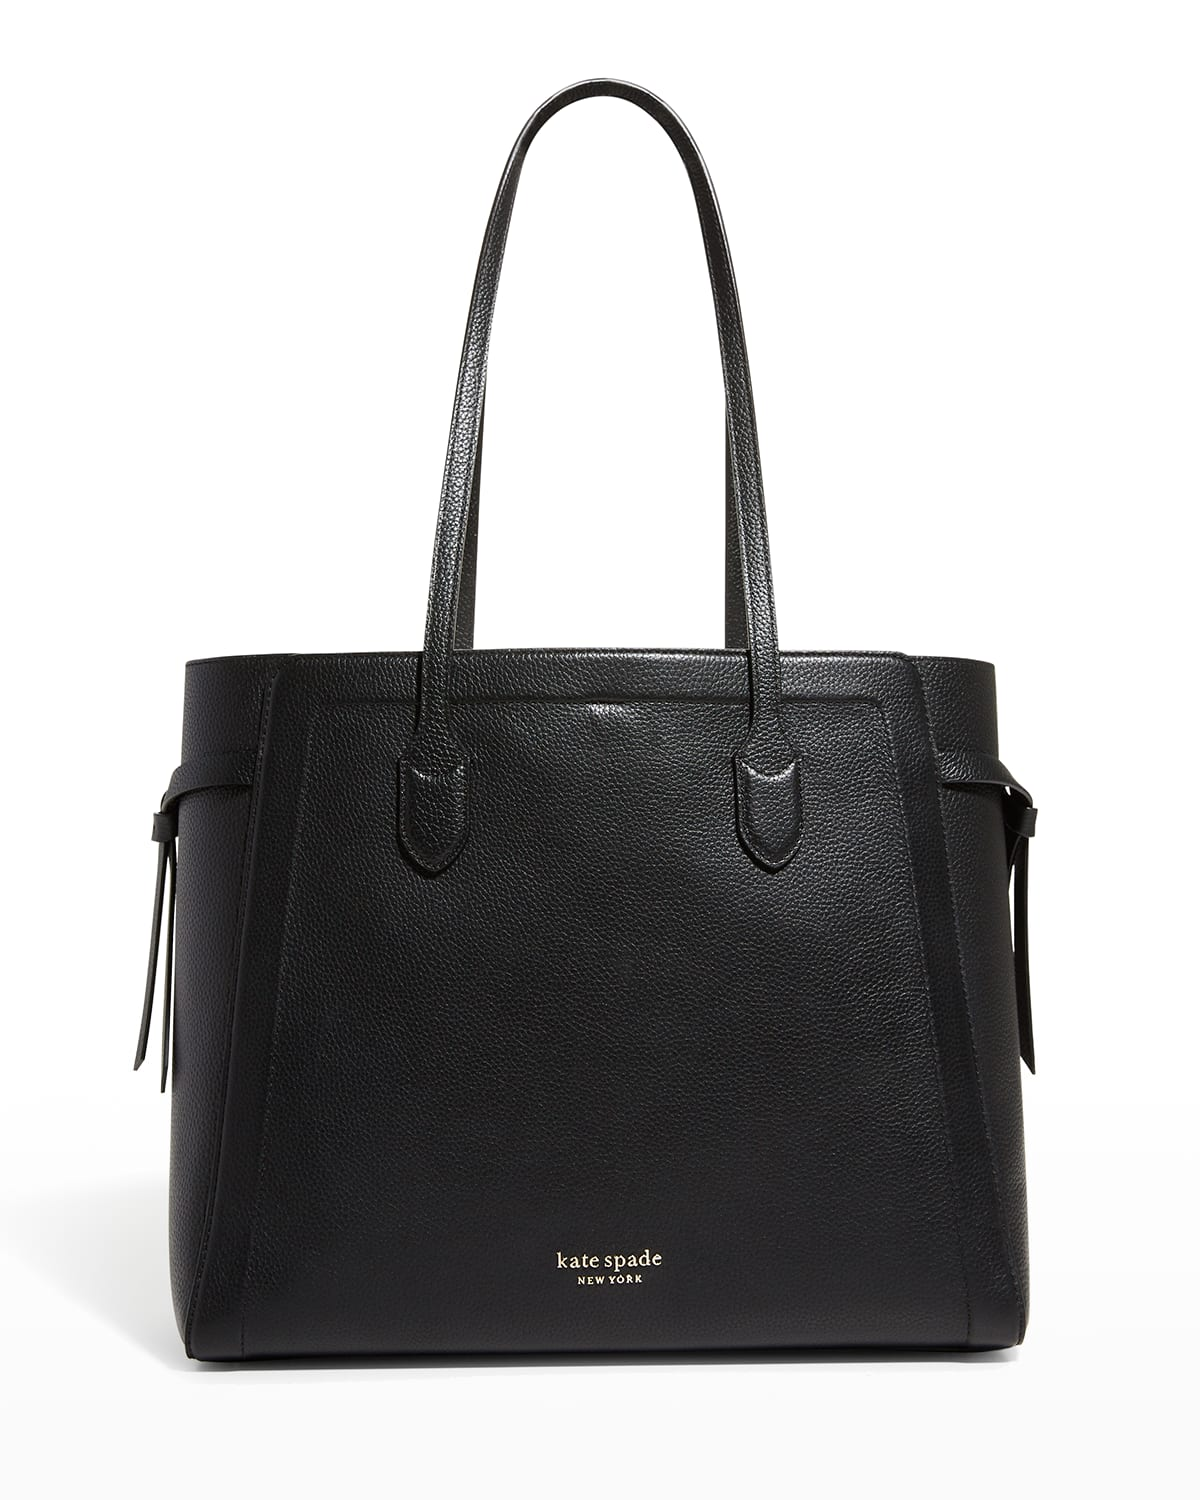 knott large leather tote bag